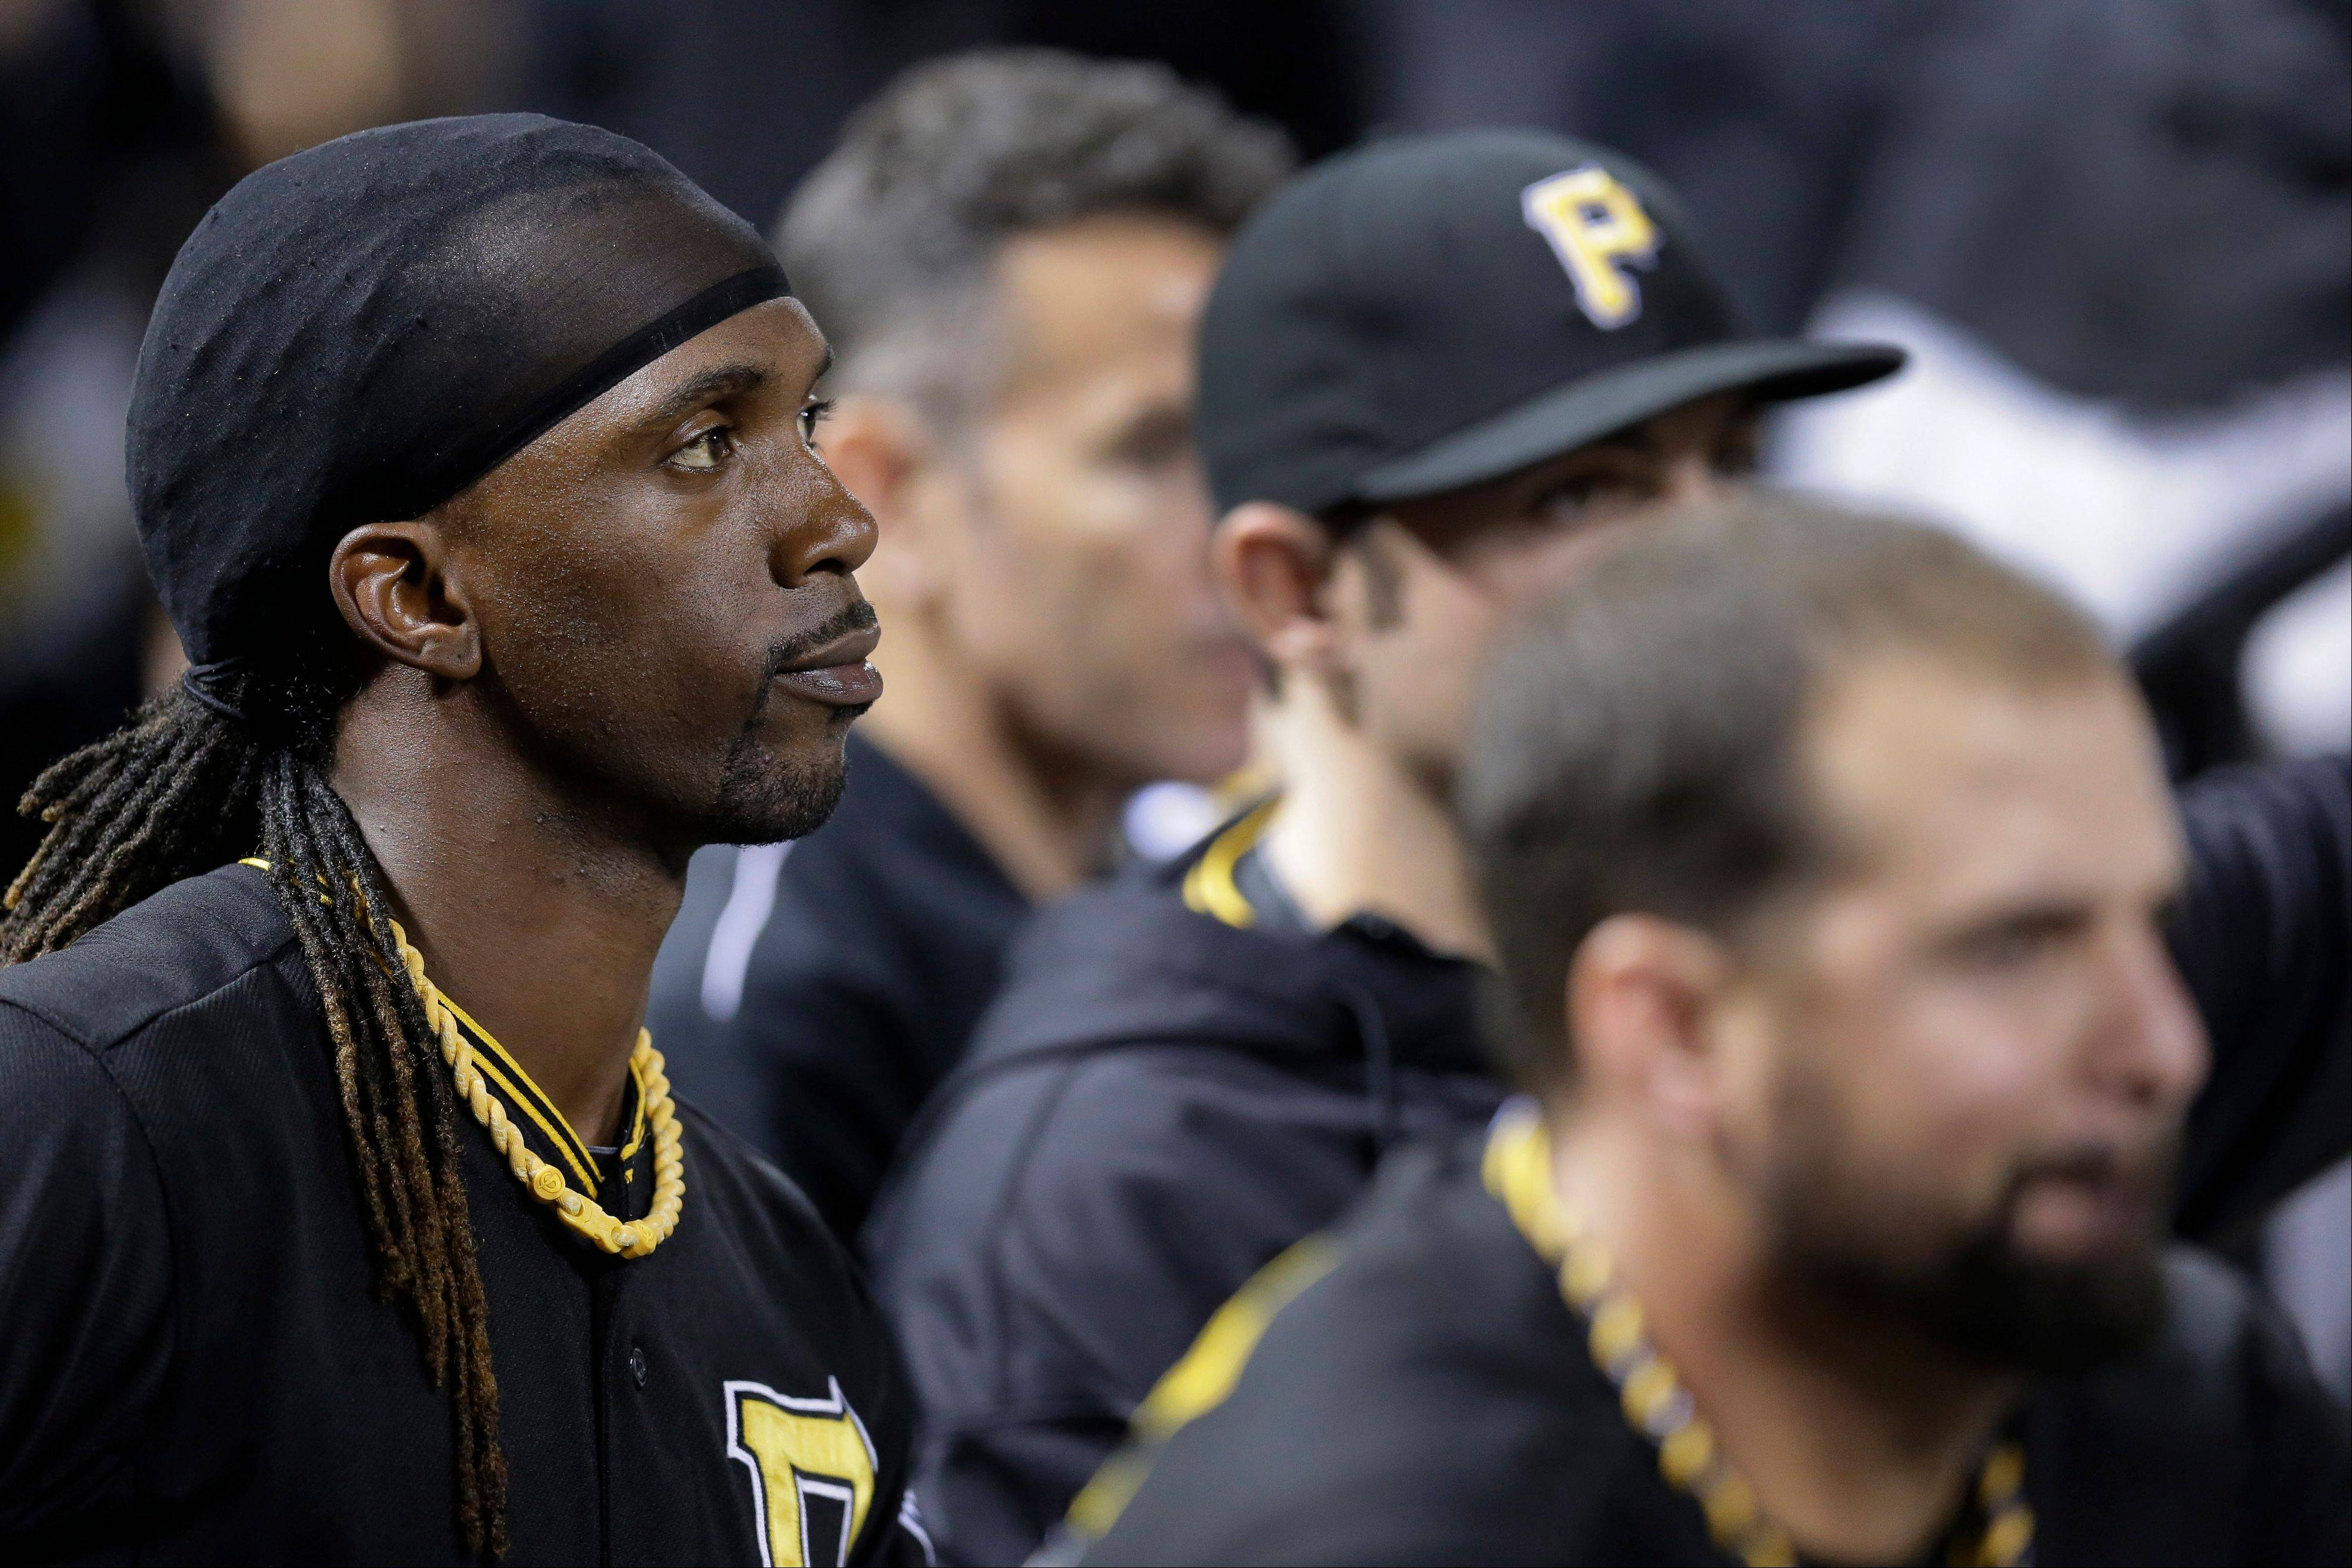 The Pirates' Andrew McCutchen, left, and his teammates watch from the dugout during the eighth inning of Game 5 of a National League Division Series against the Cardinals in St. Louis. The Cardinals won 6-1 and advanced to the NL championship series against the Los Angeles Dodgers.